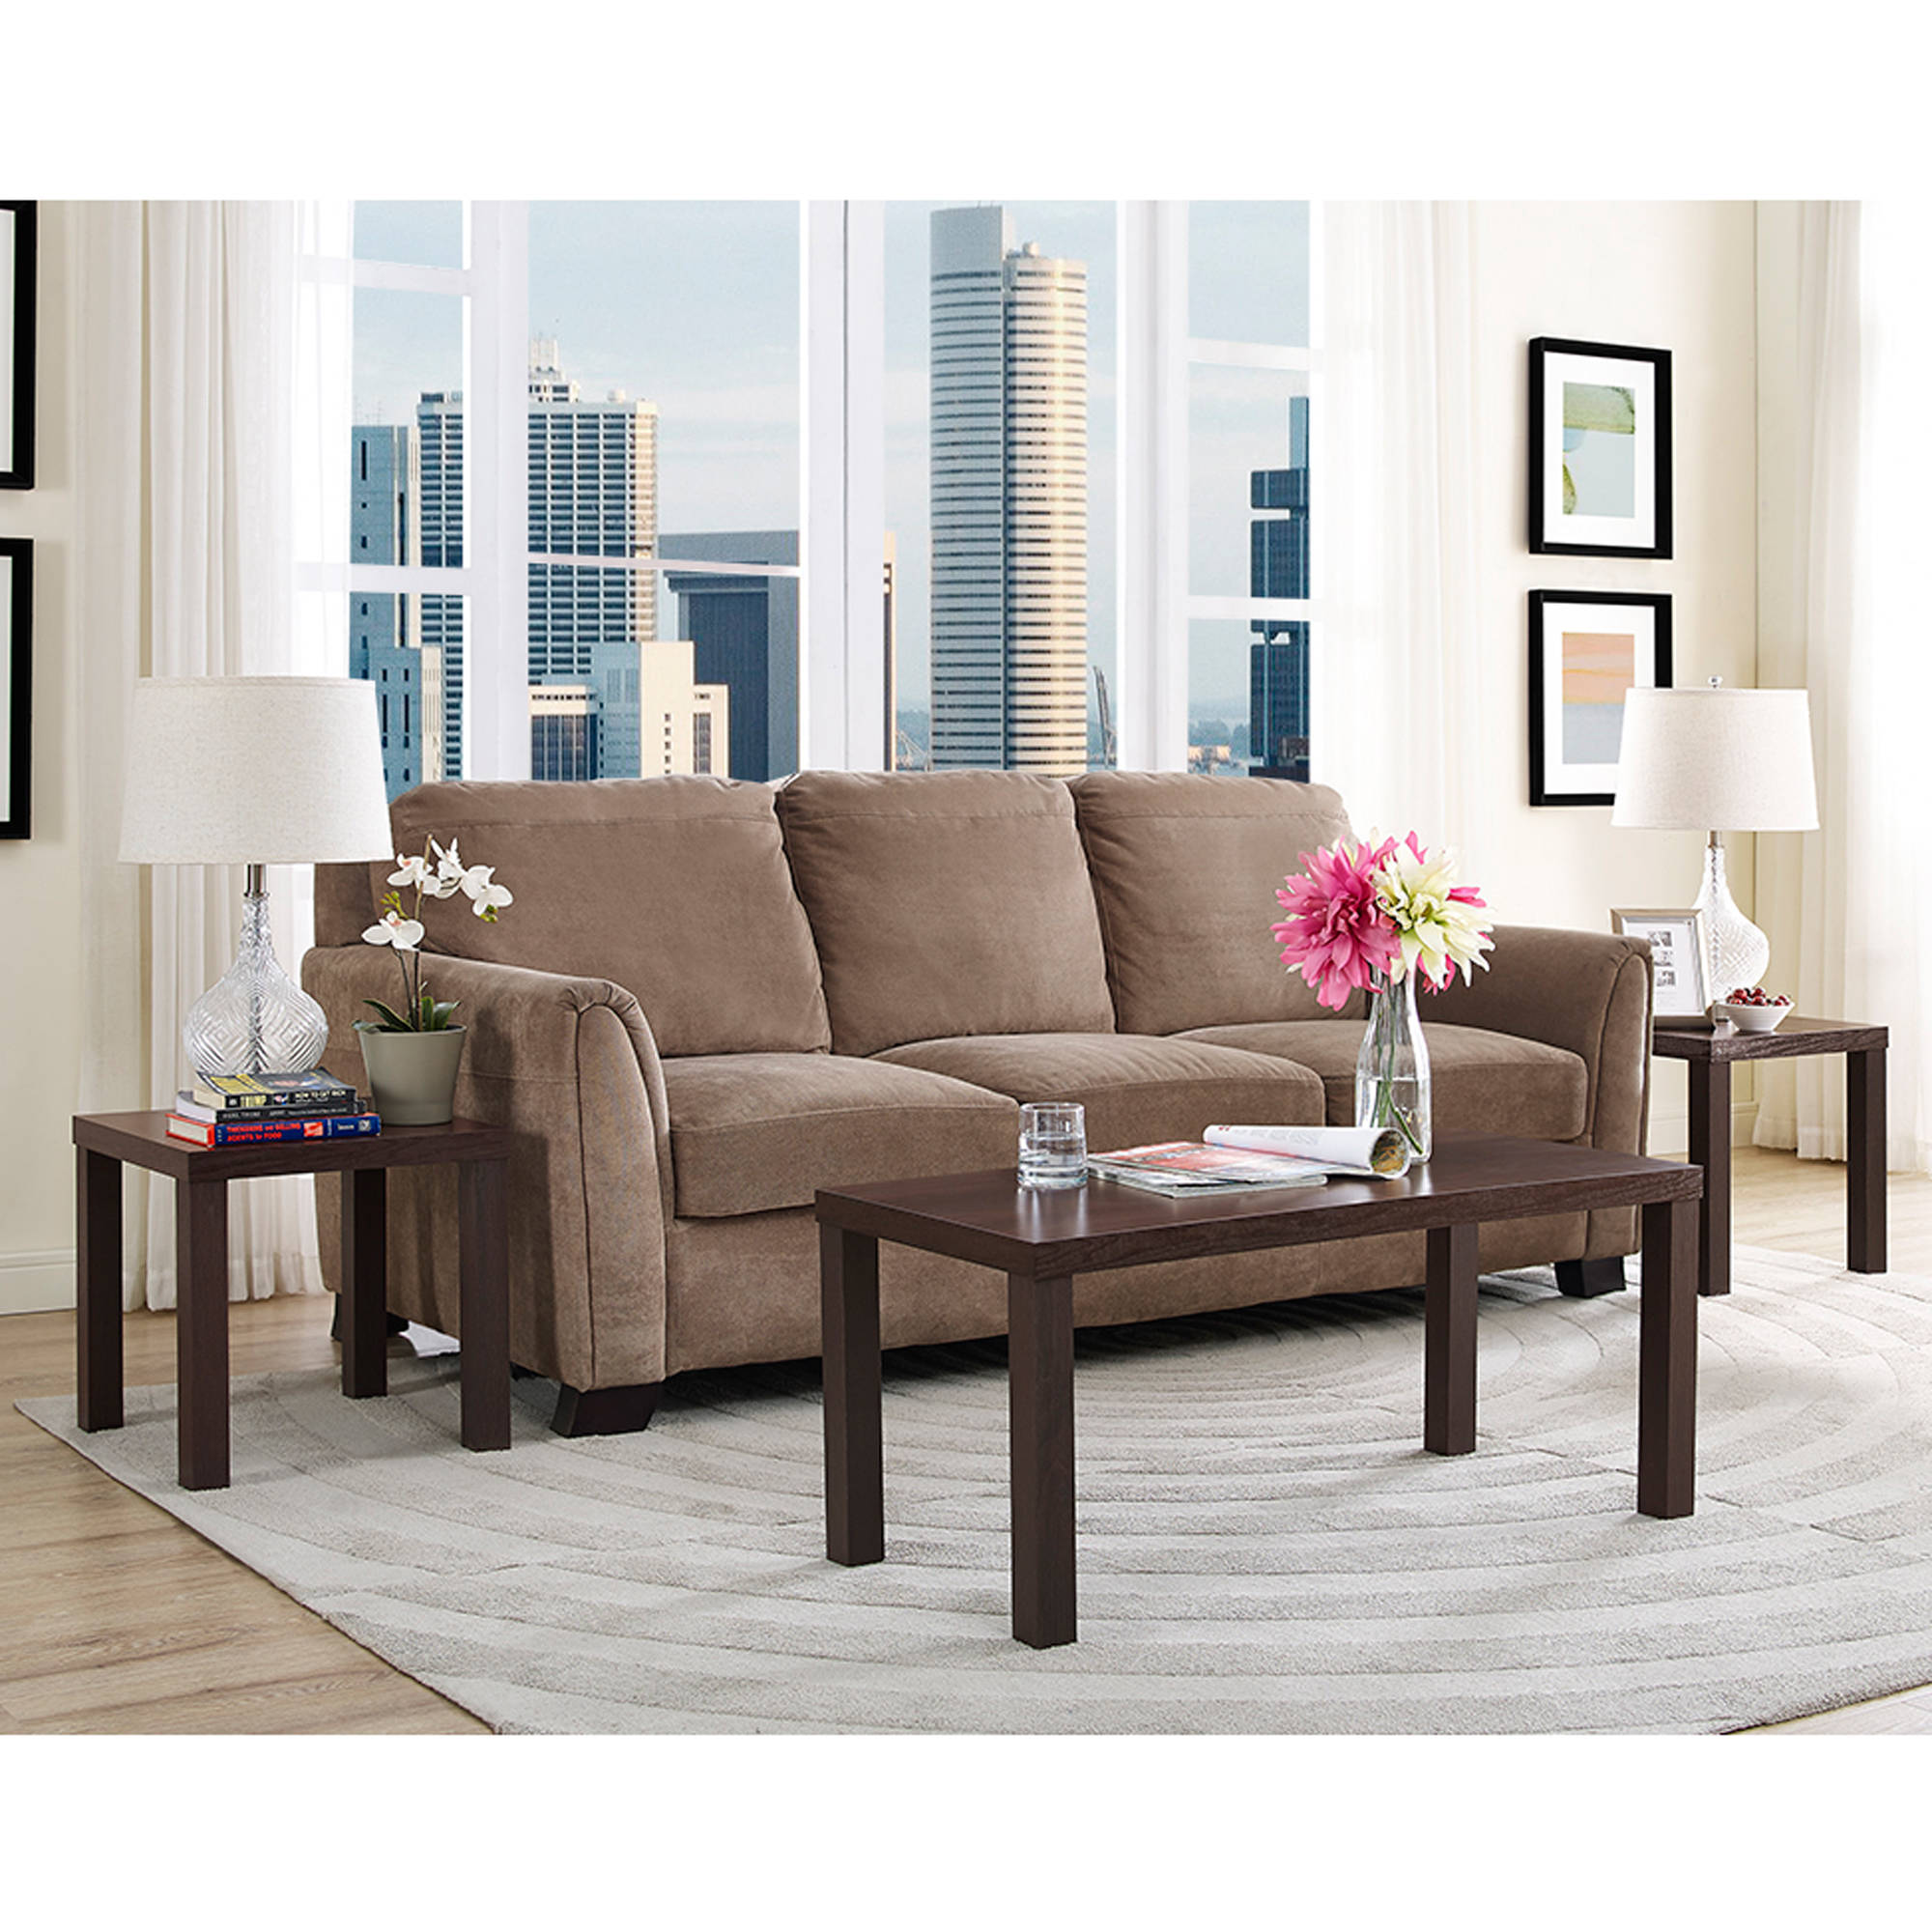 Living Room 3 Piece Table Sets walker edison 3-piece coffee table set - walmart